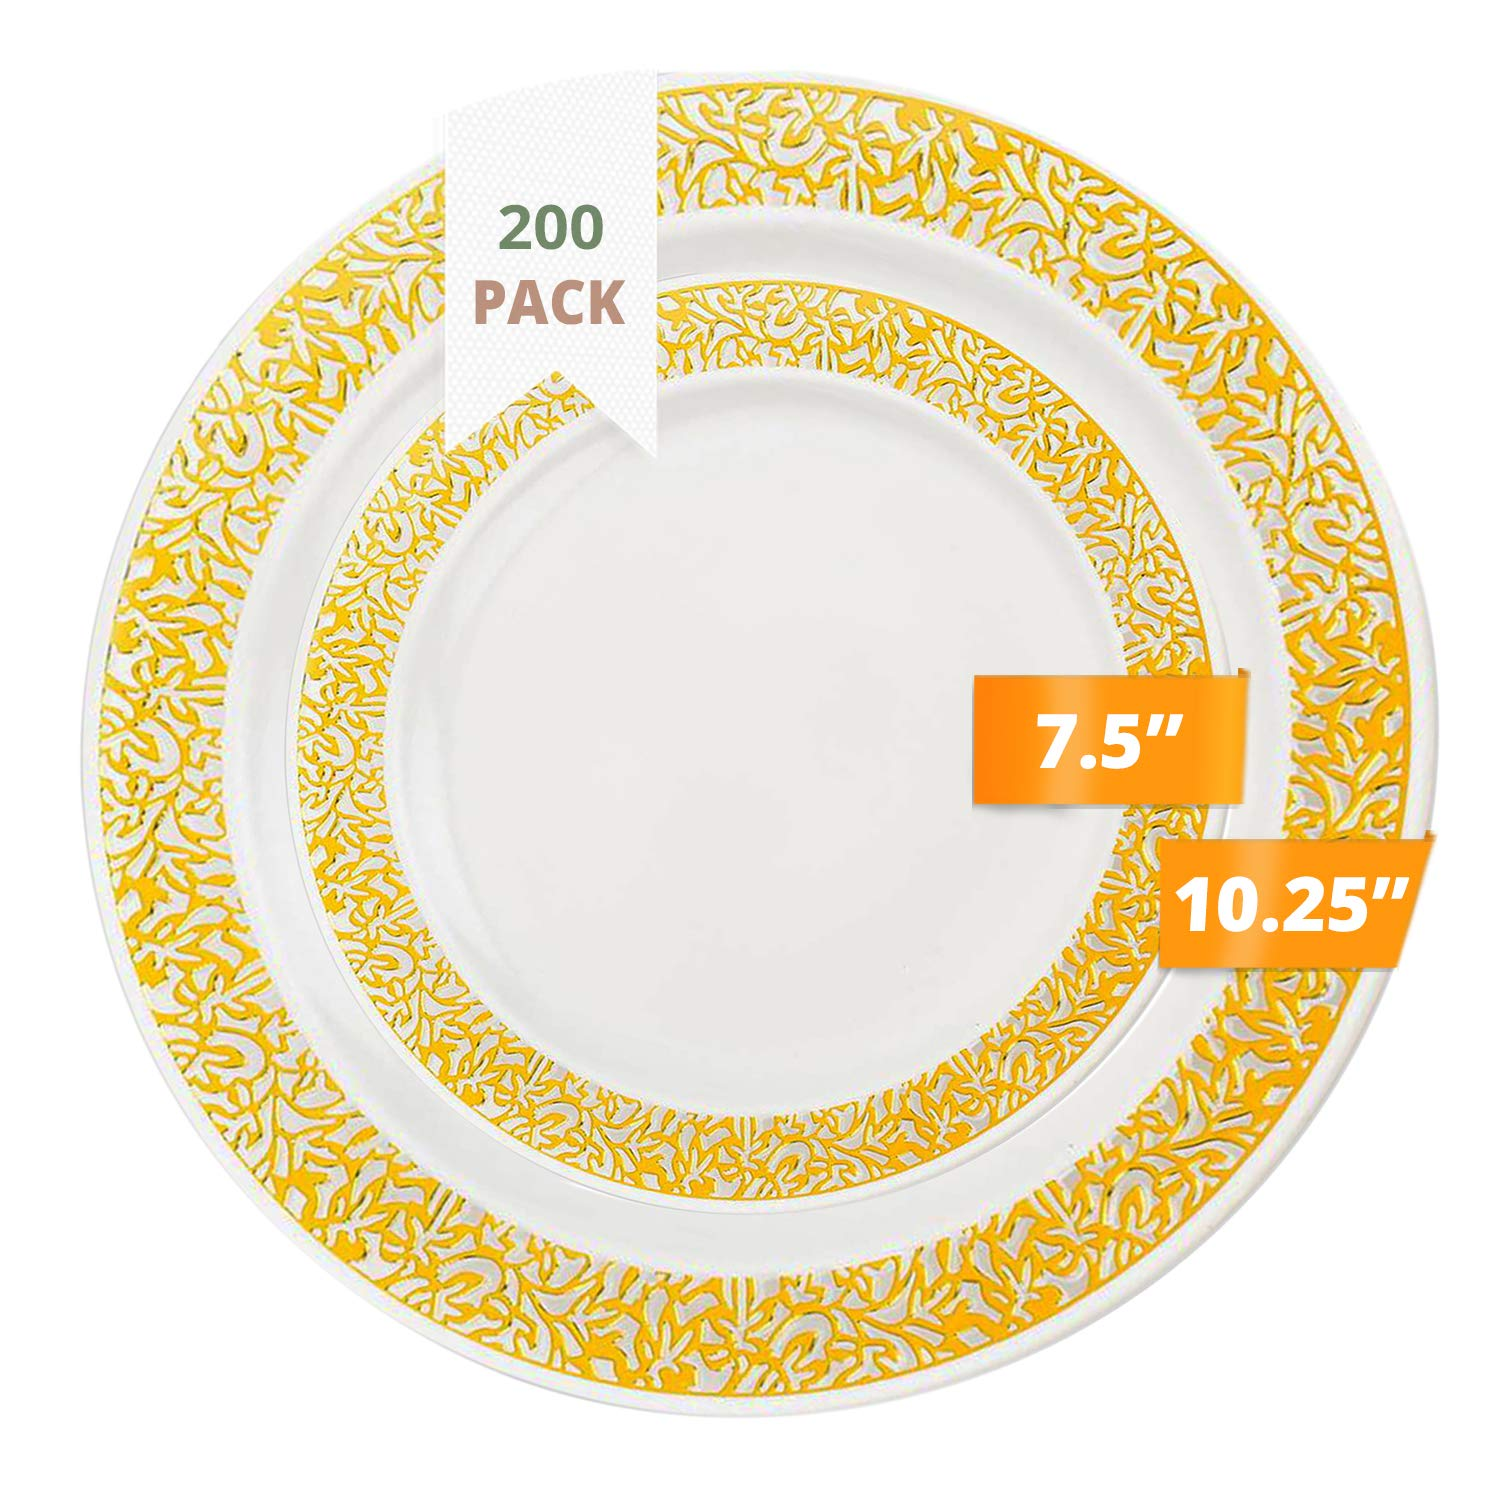 Amazon Com Party Joy 200 Piece Plastic Dinnerware Set Lace Collection 100 Dinner Plates 100 Salad Plates Heavy Duty Premium Plastic Plates For Wedding Parties Camping More White W